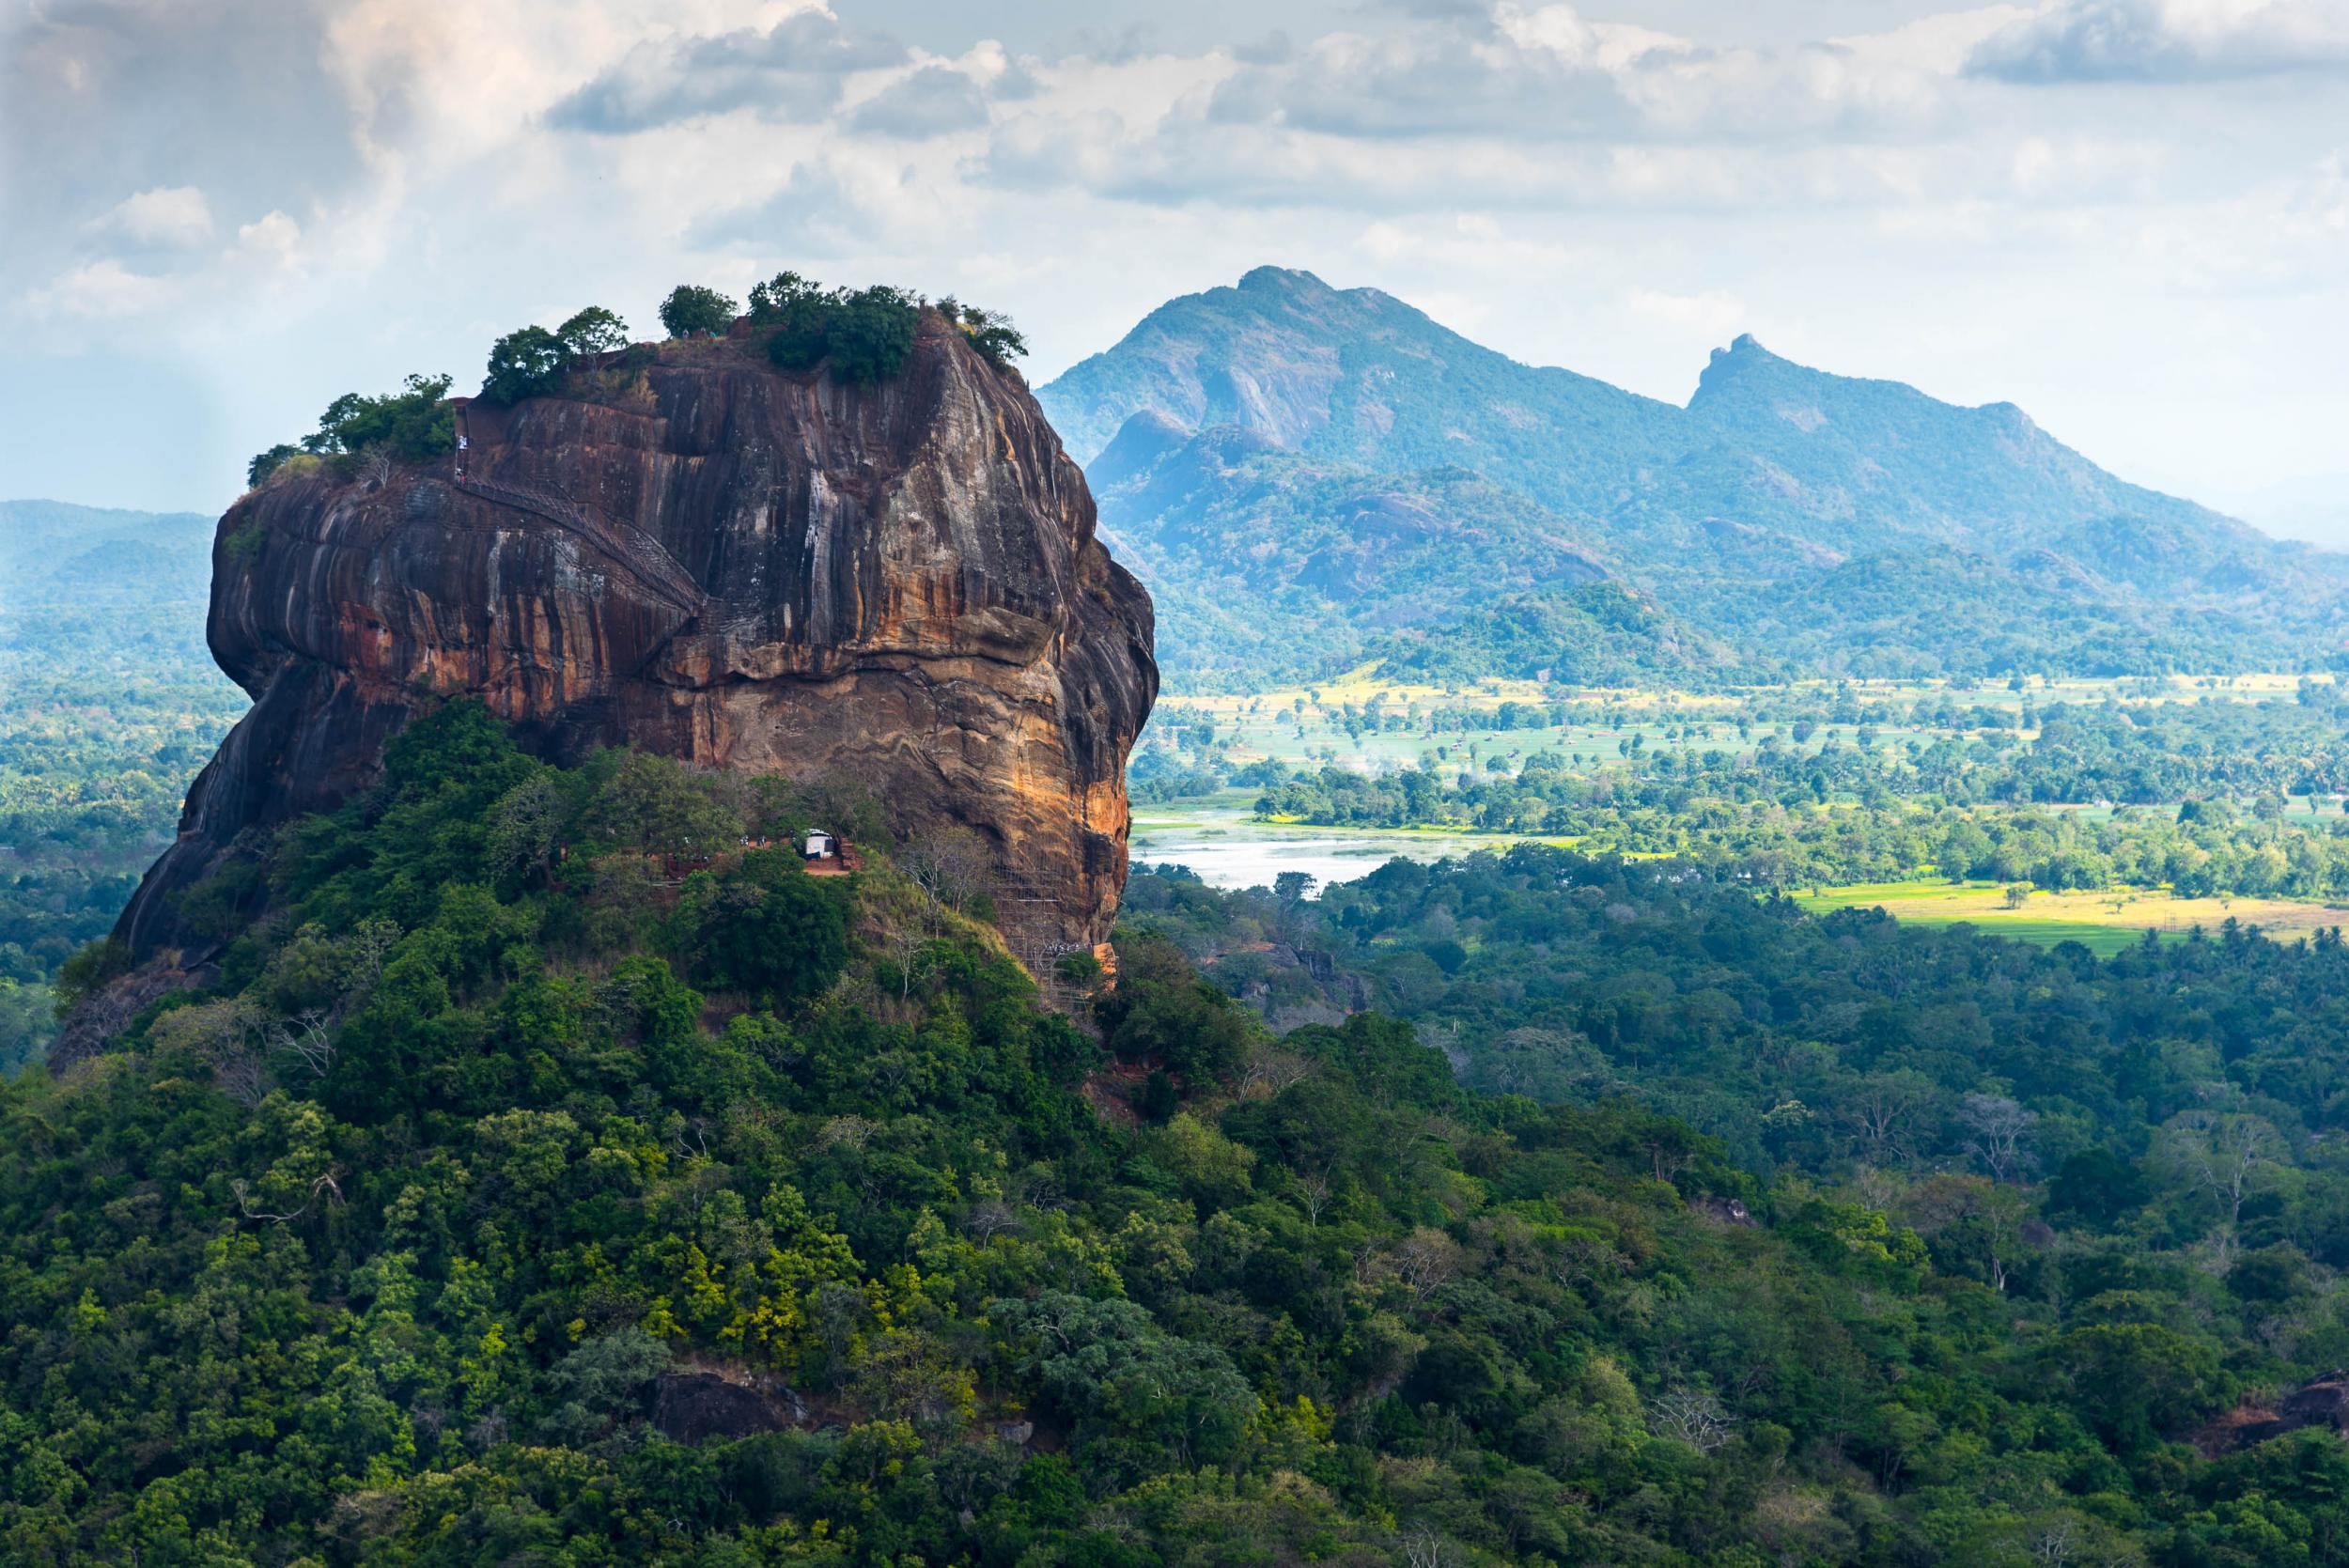 Sri Lanka - latest news, breaking stories and comment - The Independent